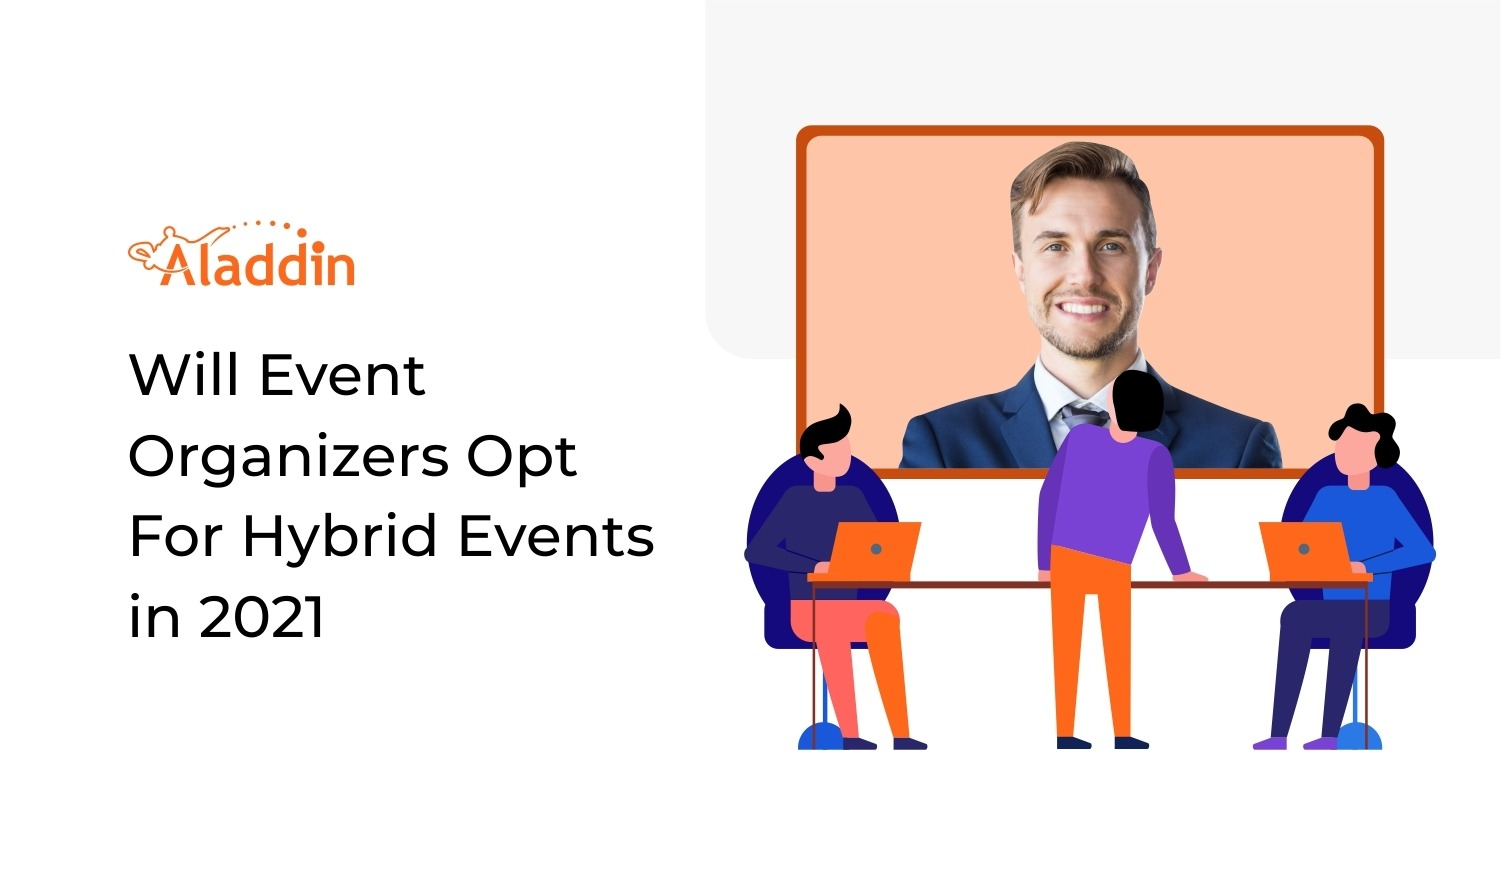 Will Event Organizers Opt For Hybrid Events In 2021?